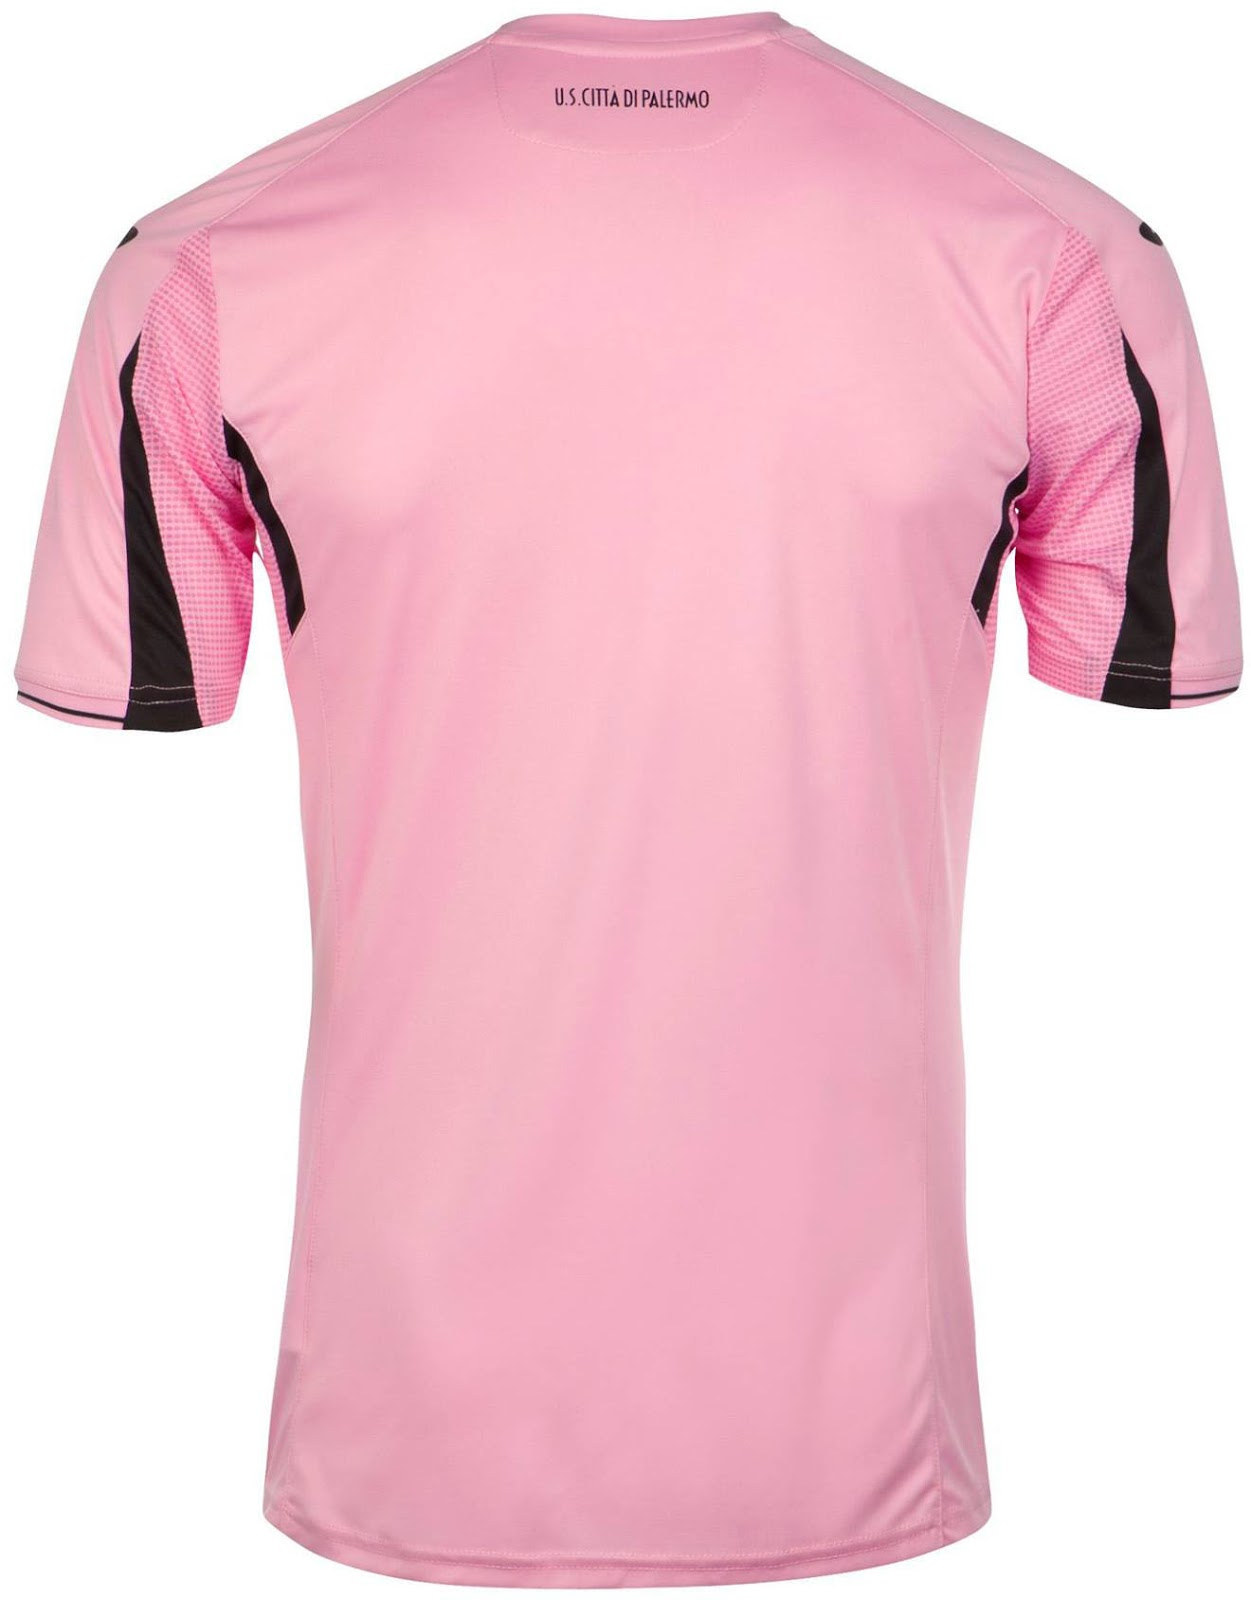 this is the new palermo 2015 2016 kit - Pink Home 2015